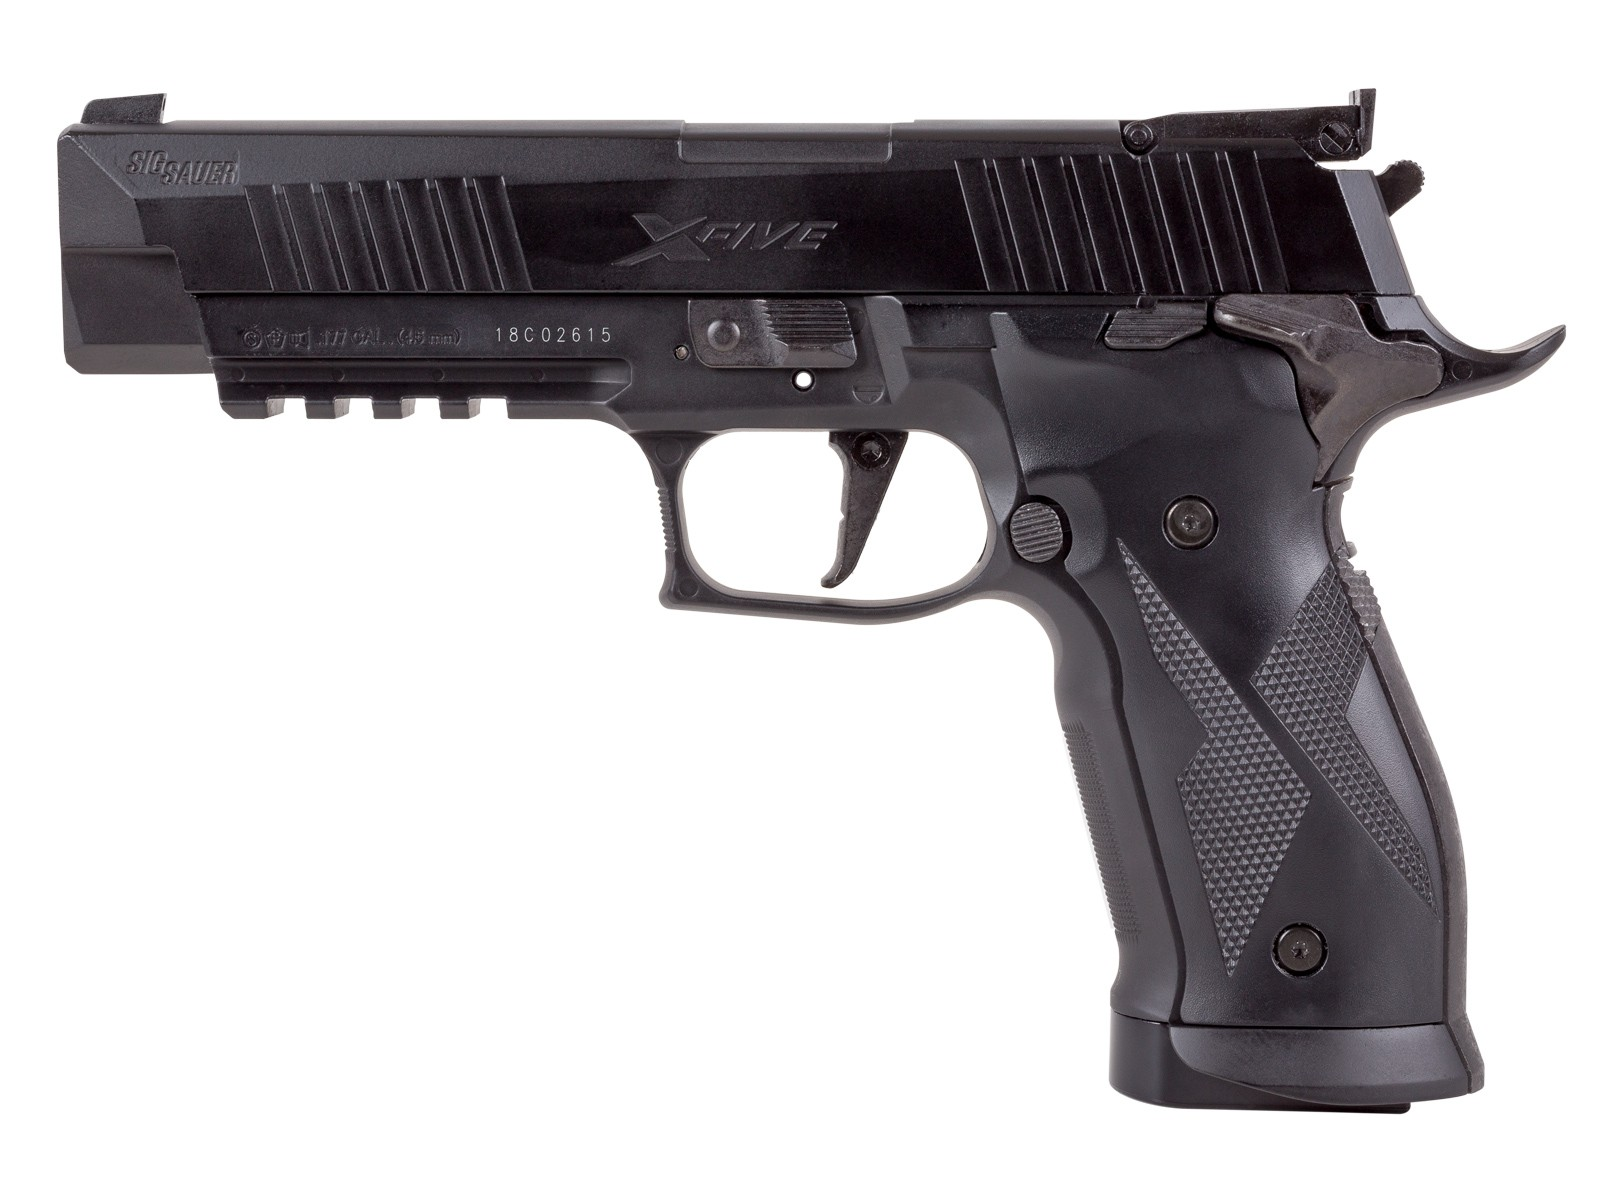 Sig Sauer X-Five ASP CO2 Pellet Pistol, Black 0.177 Image